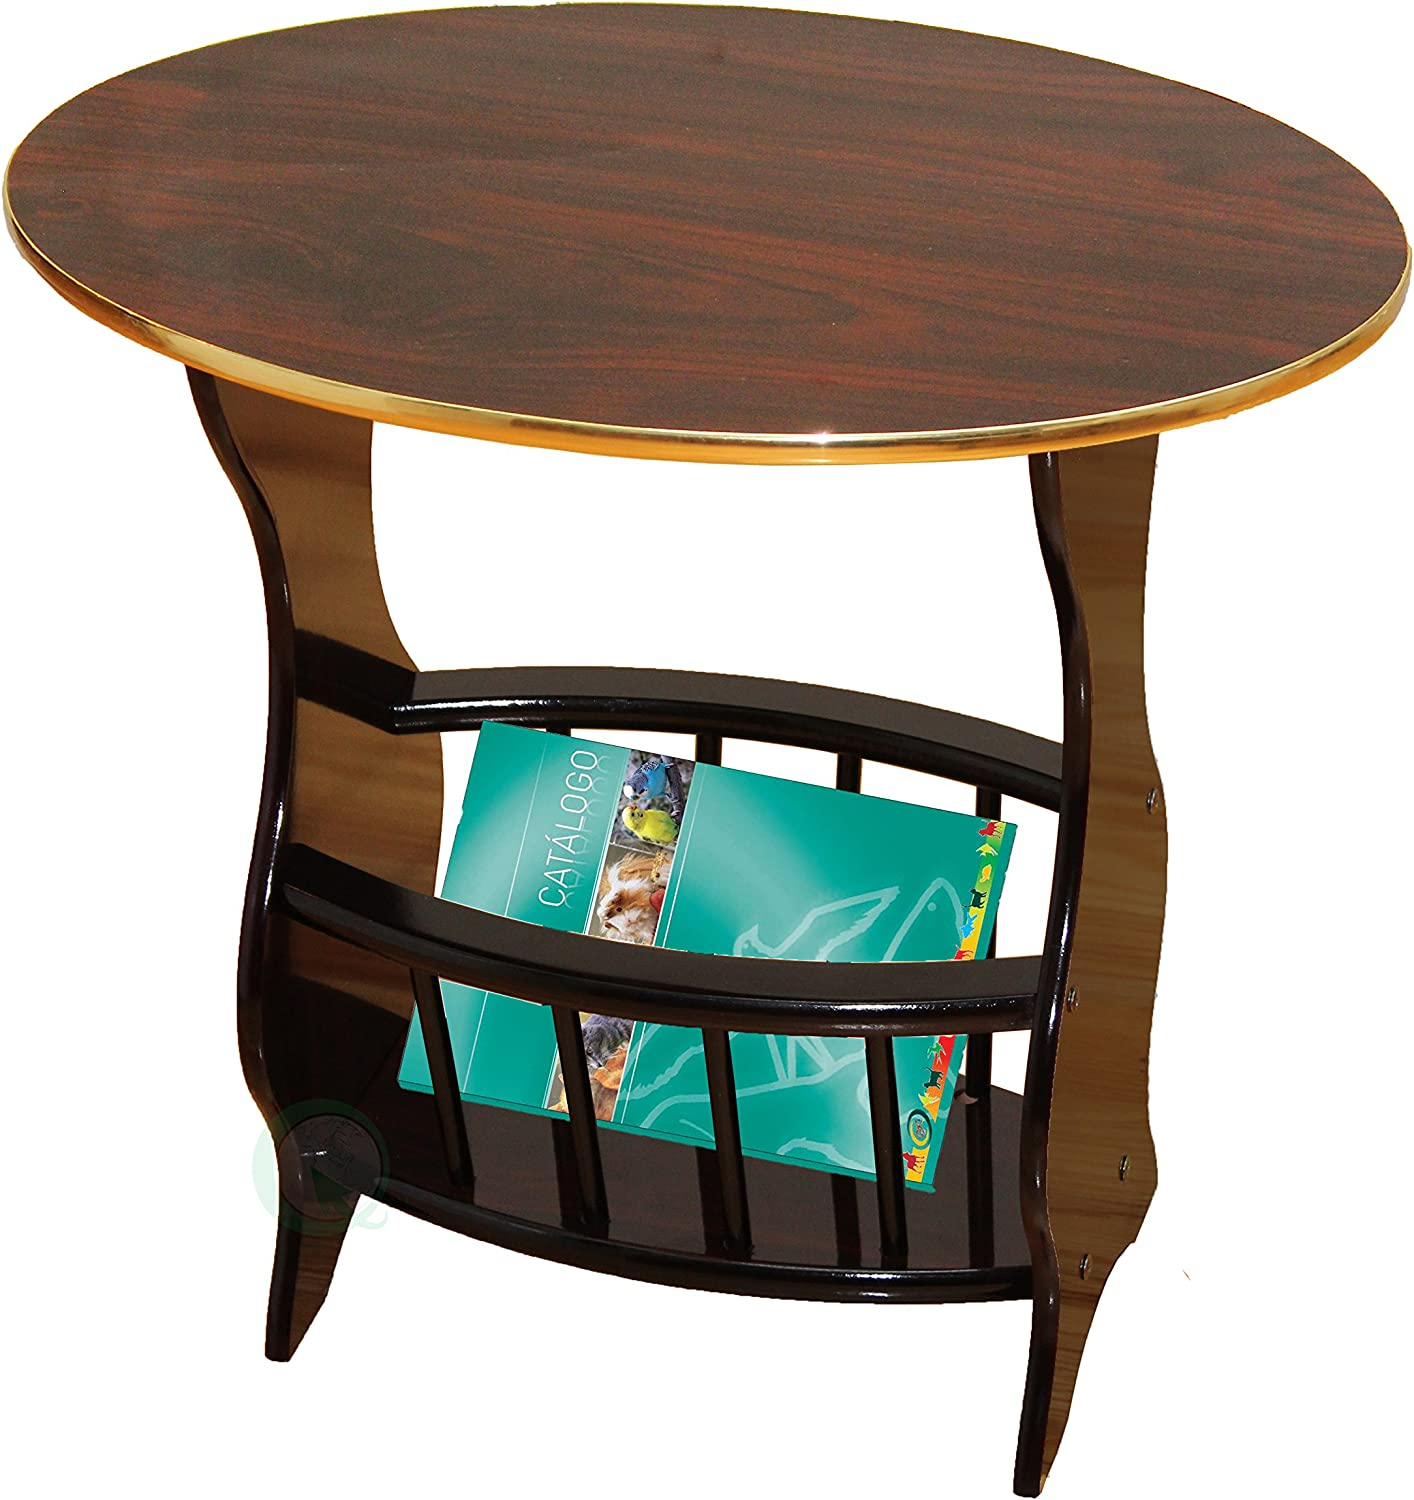 Uniquewise QI003138B Oval Side Table with Magazine Holder, Espresso Brown Finish